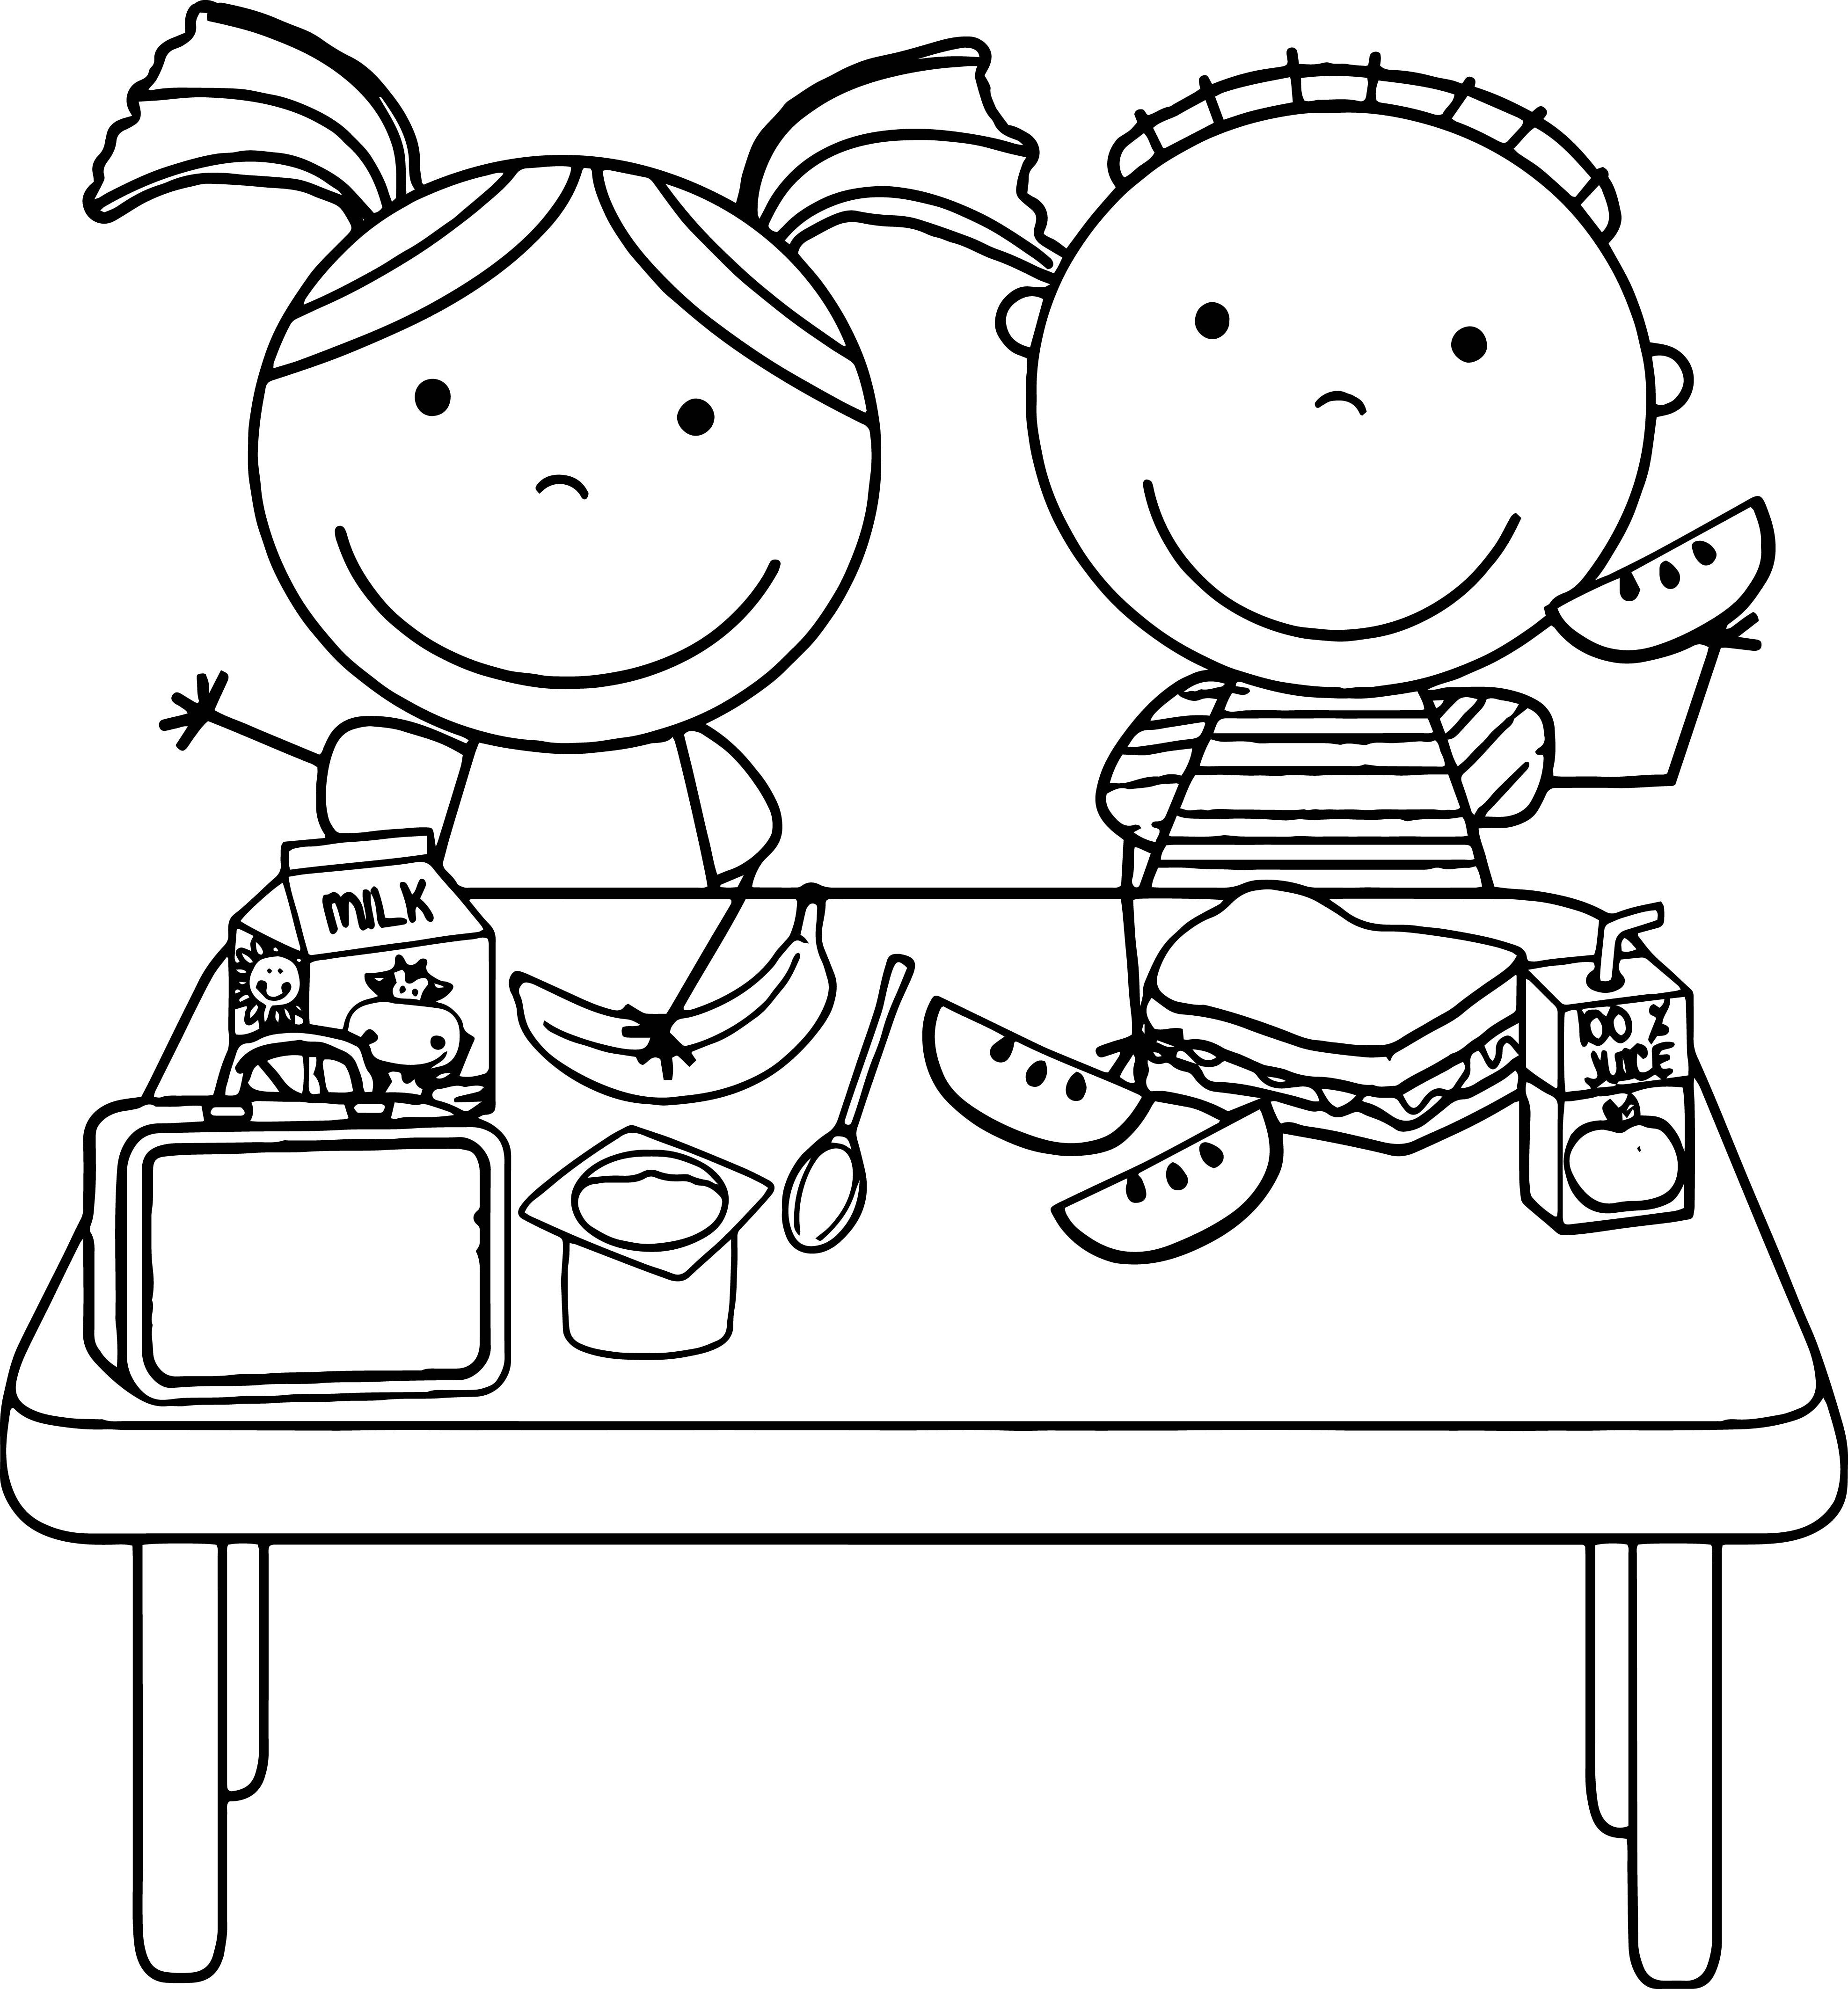 lunch food coloring pages lunch images coloring pages coloring book food pages lunch coloring